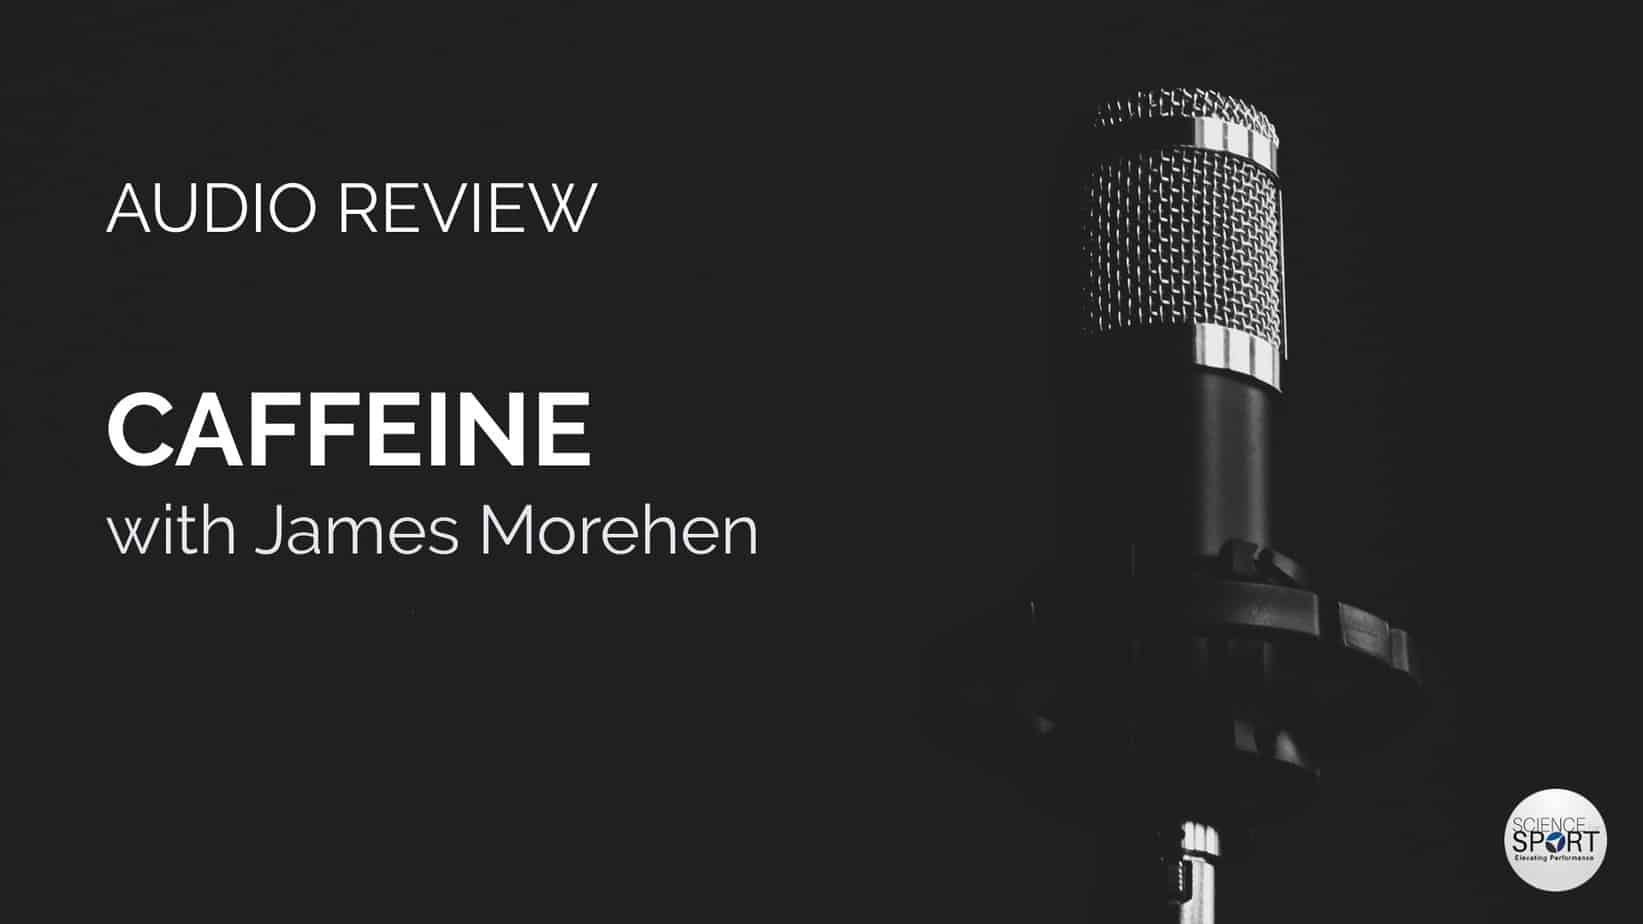 Audio Review - Caffeine with James Morehen - Science for Sport